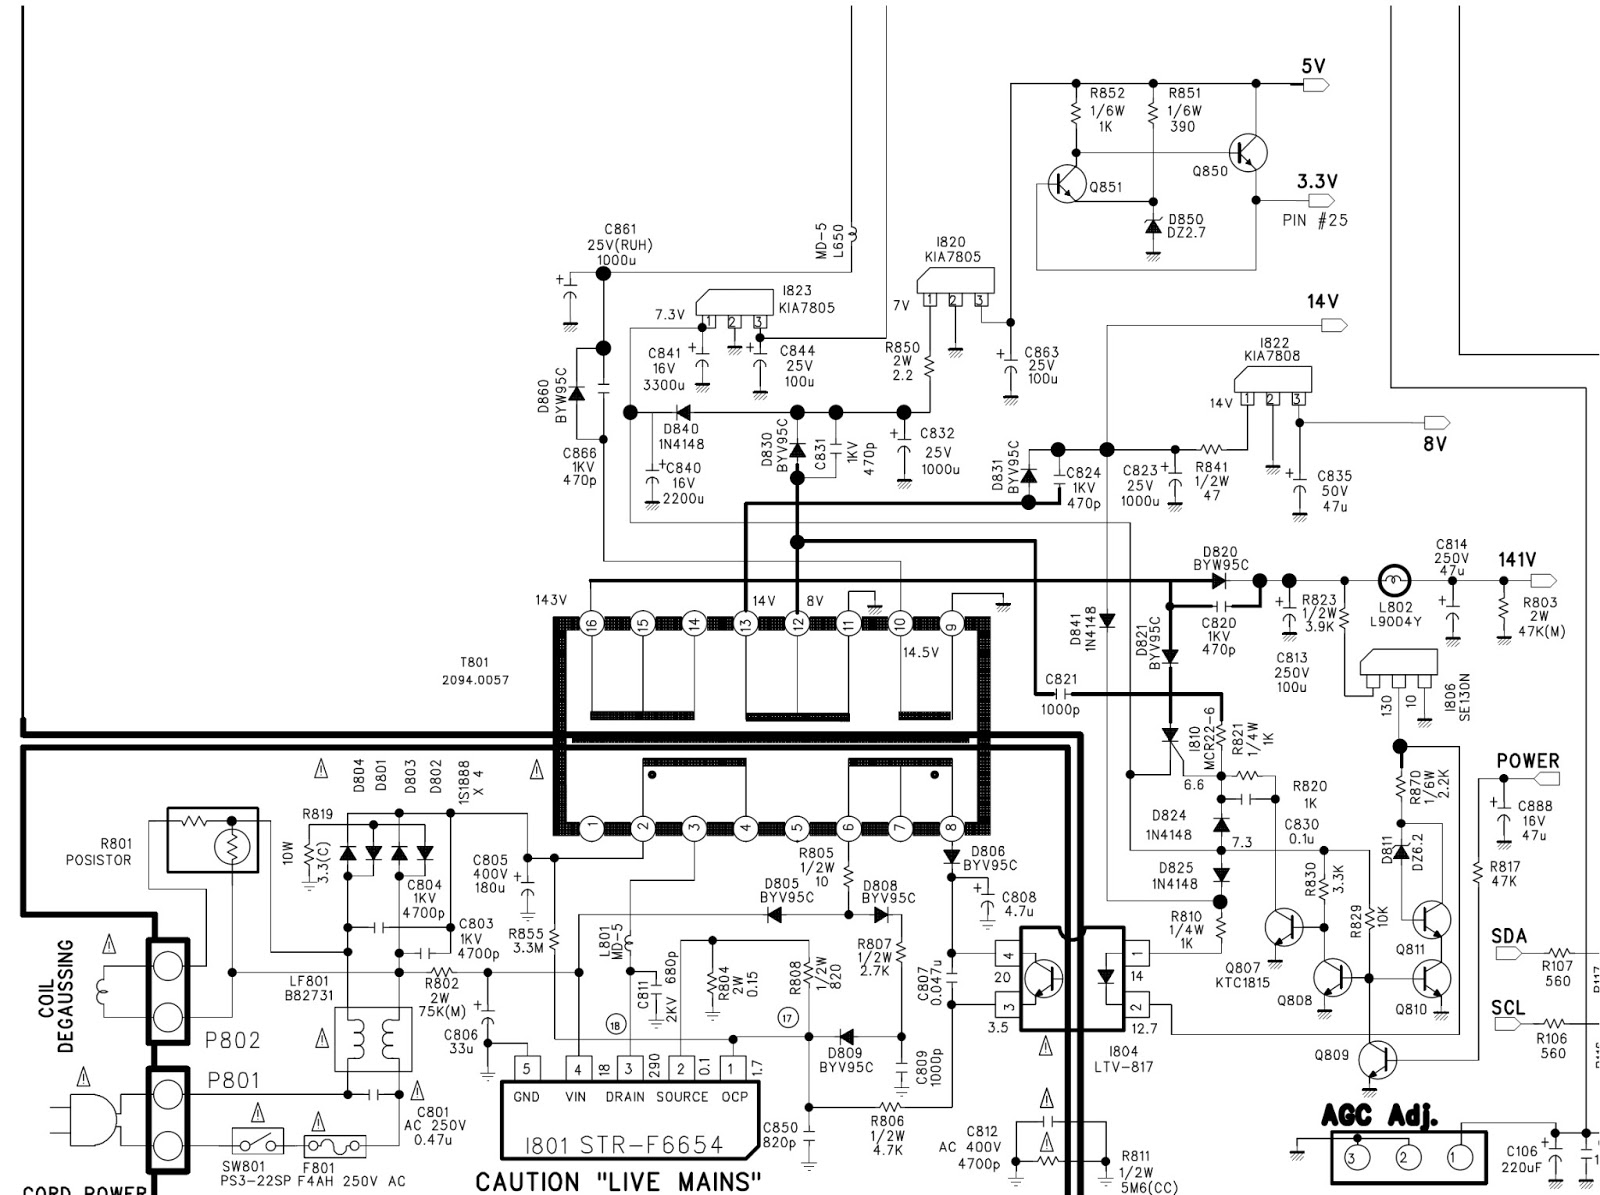 STR - F6654 BASED SMPS POWER SUPPLY SCHEMATIC DIAGRAM - DAEWOO DSC ...